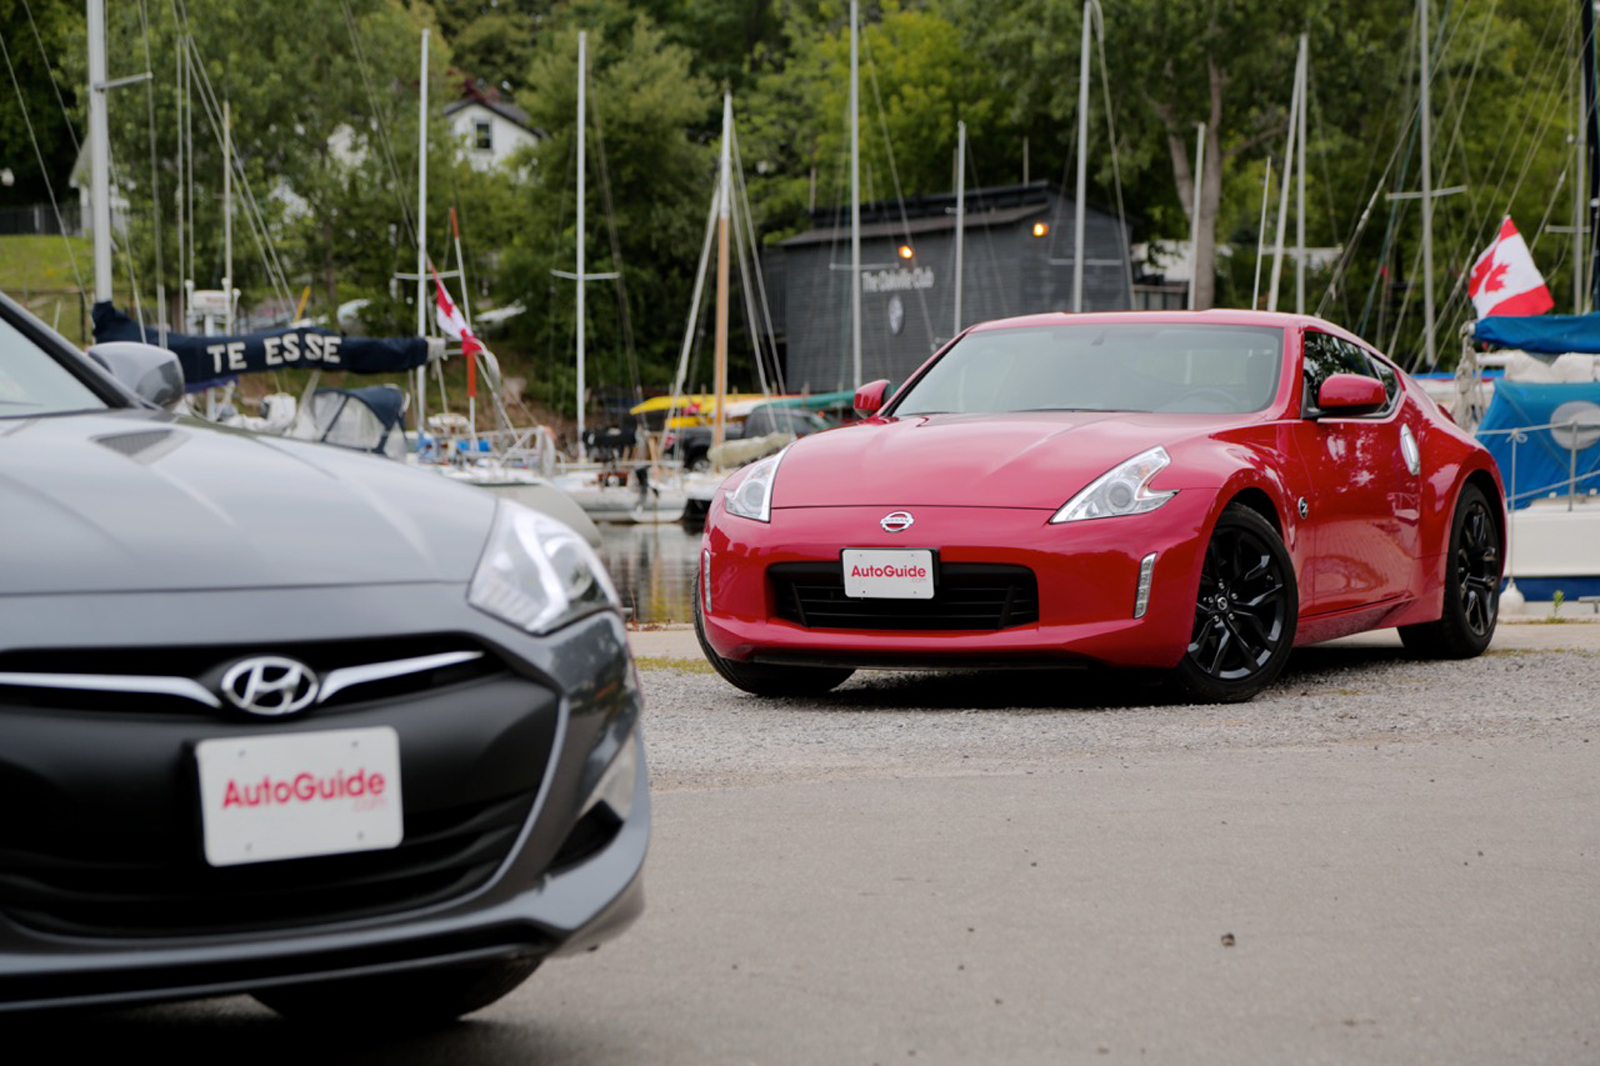 coupe hyundai features bisimoto front genesis by street engineering super